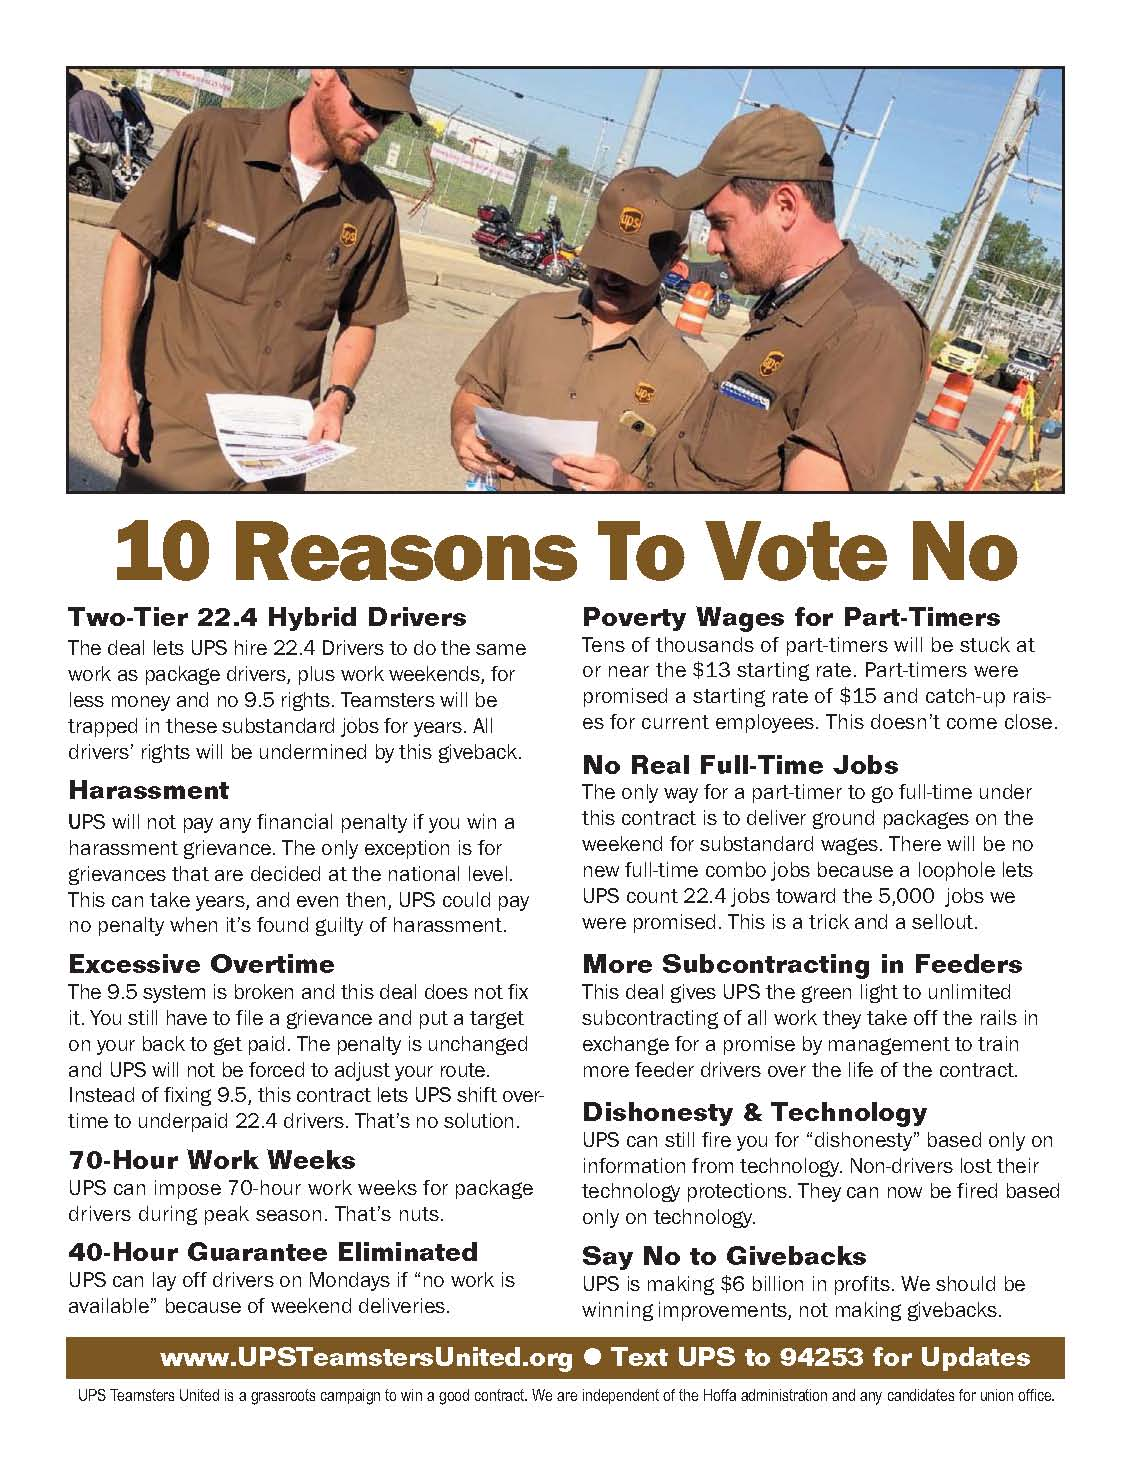 10-reasons-to-vote-no-v2.jpg